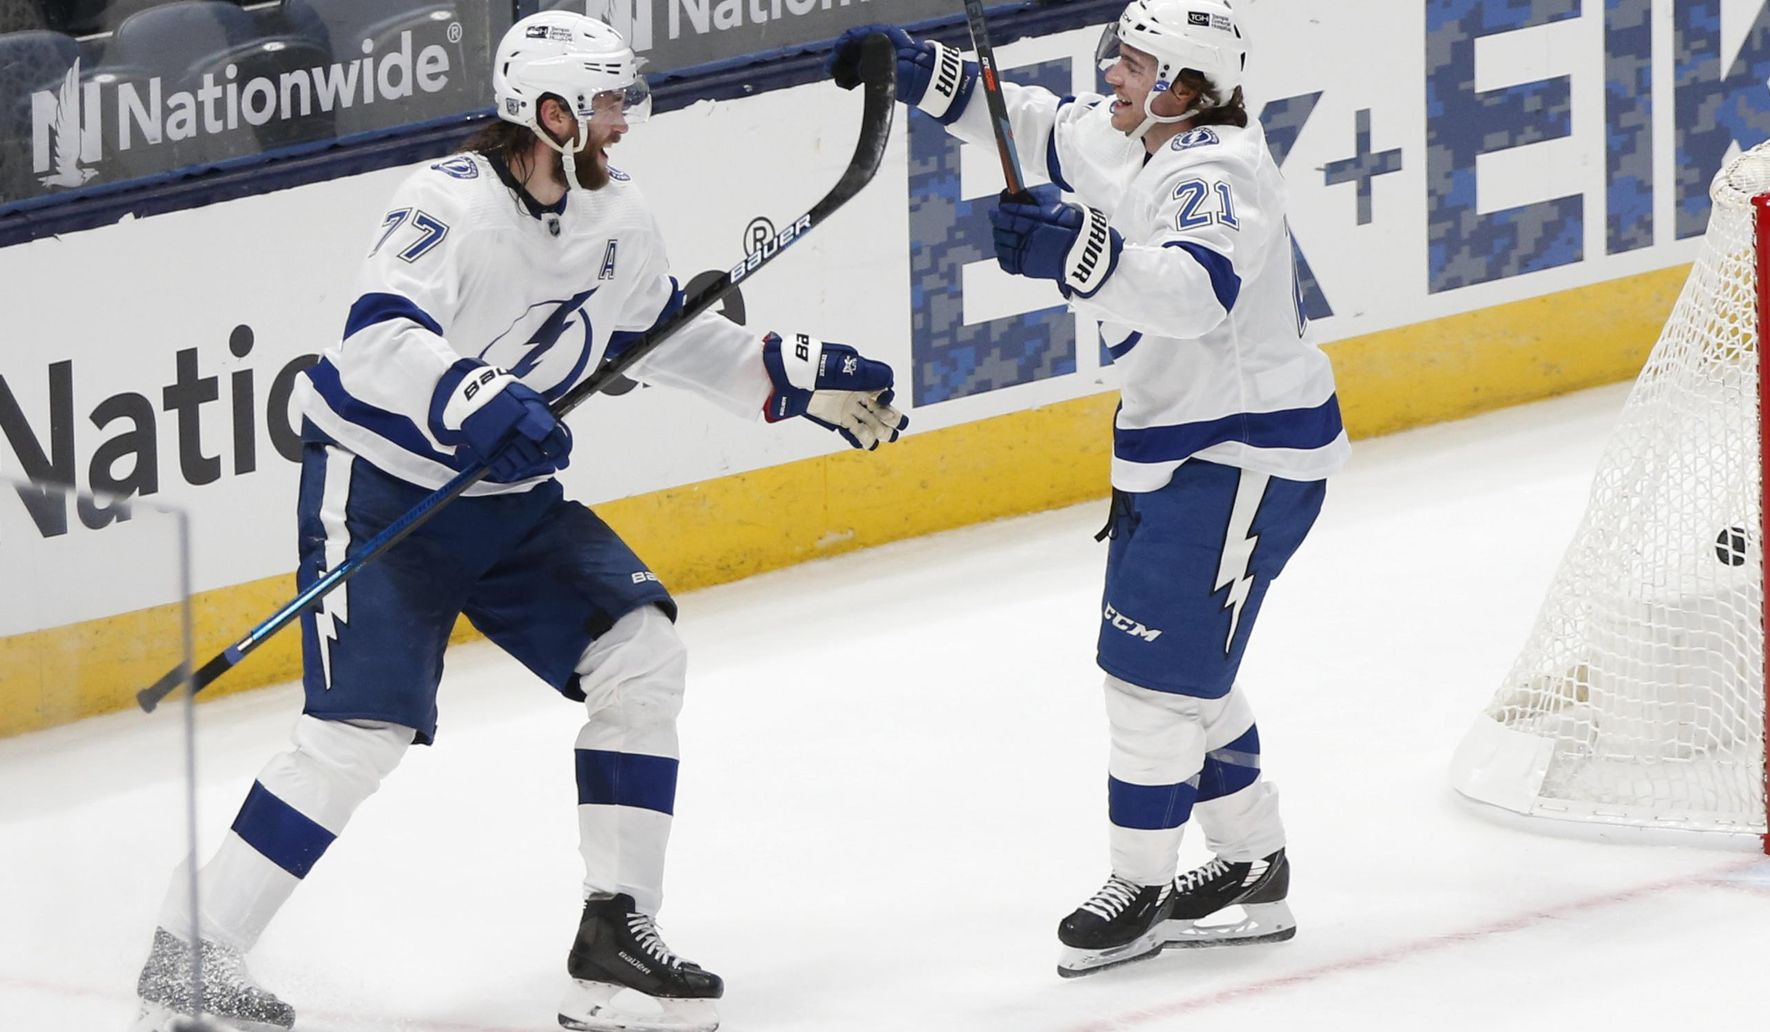 Lightning_blue_jackets_hockey_35921_c0-108-2569-1605_s1770x1032